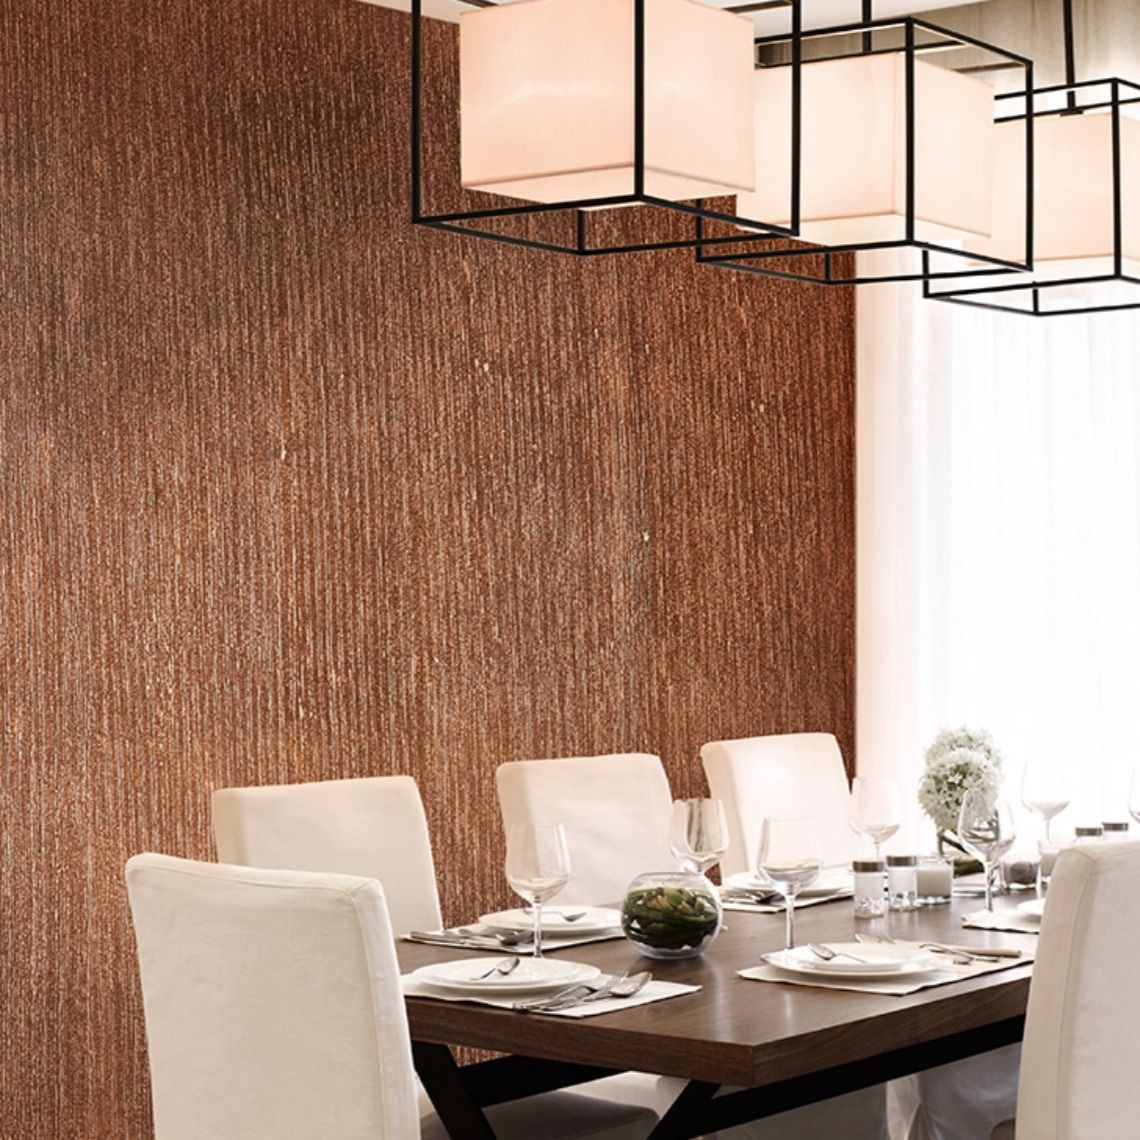 Xpresspainters Texture Of The Day Antico Linea Asian Paints Wall Texture Design Textured Wall Paint Designs